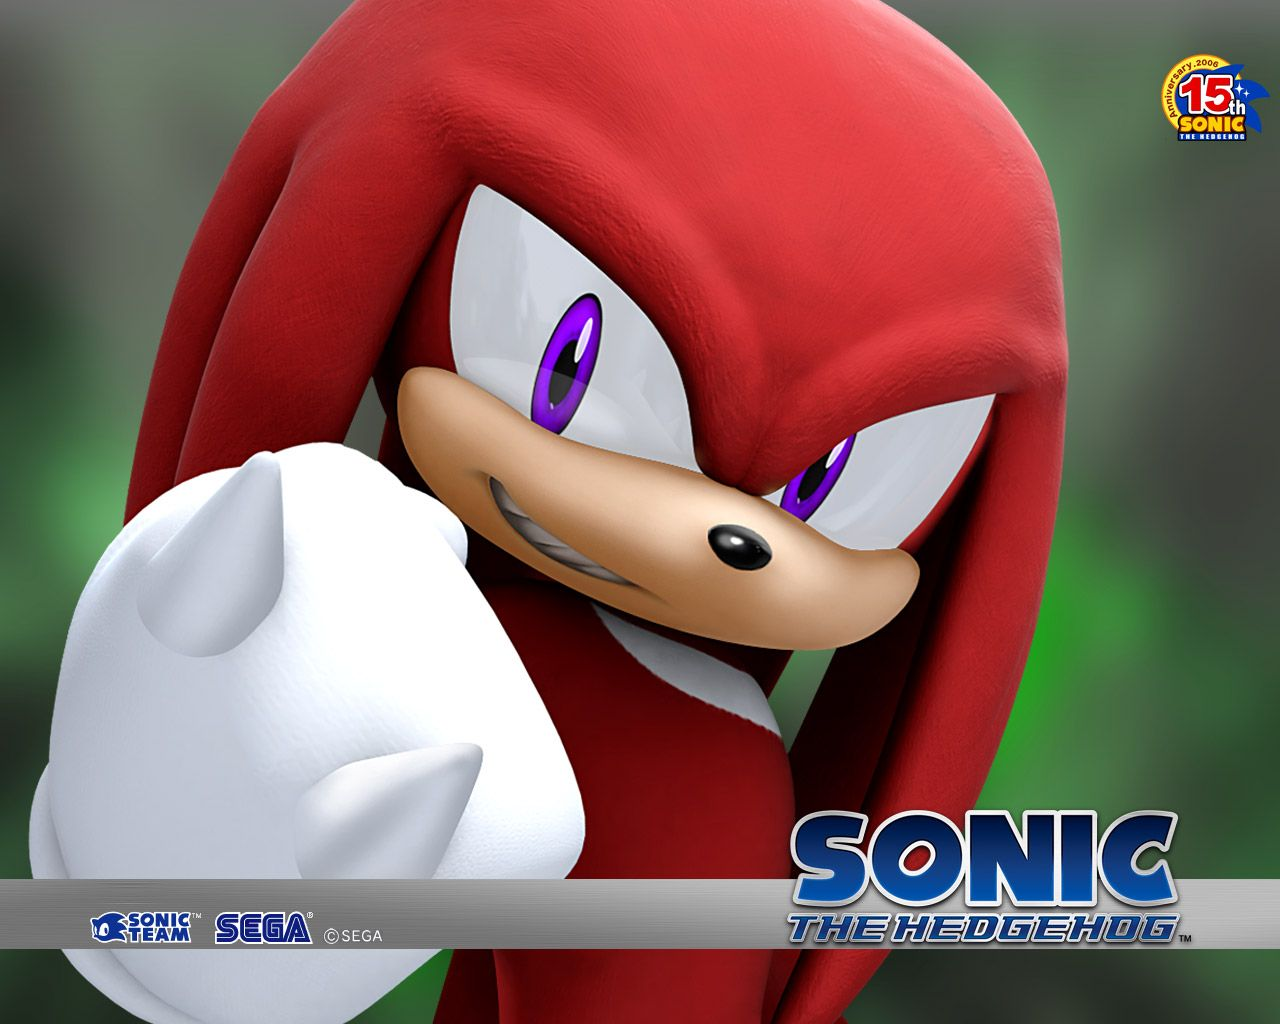 knuckles sonic the hedgehog 2006 sonic movie